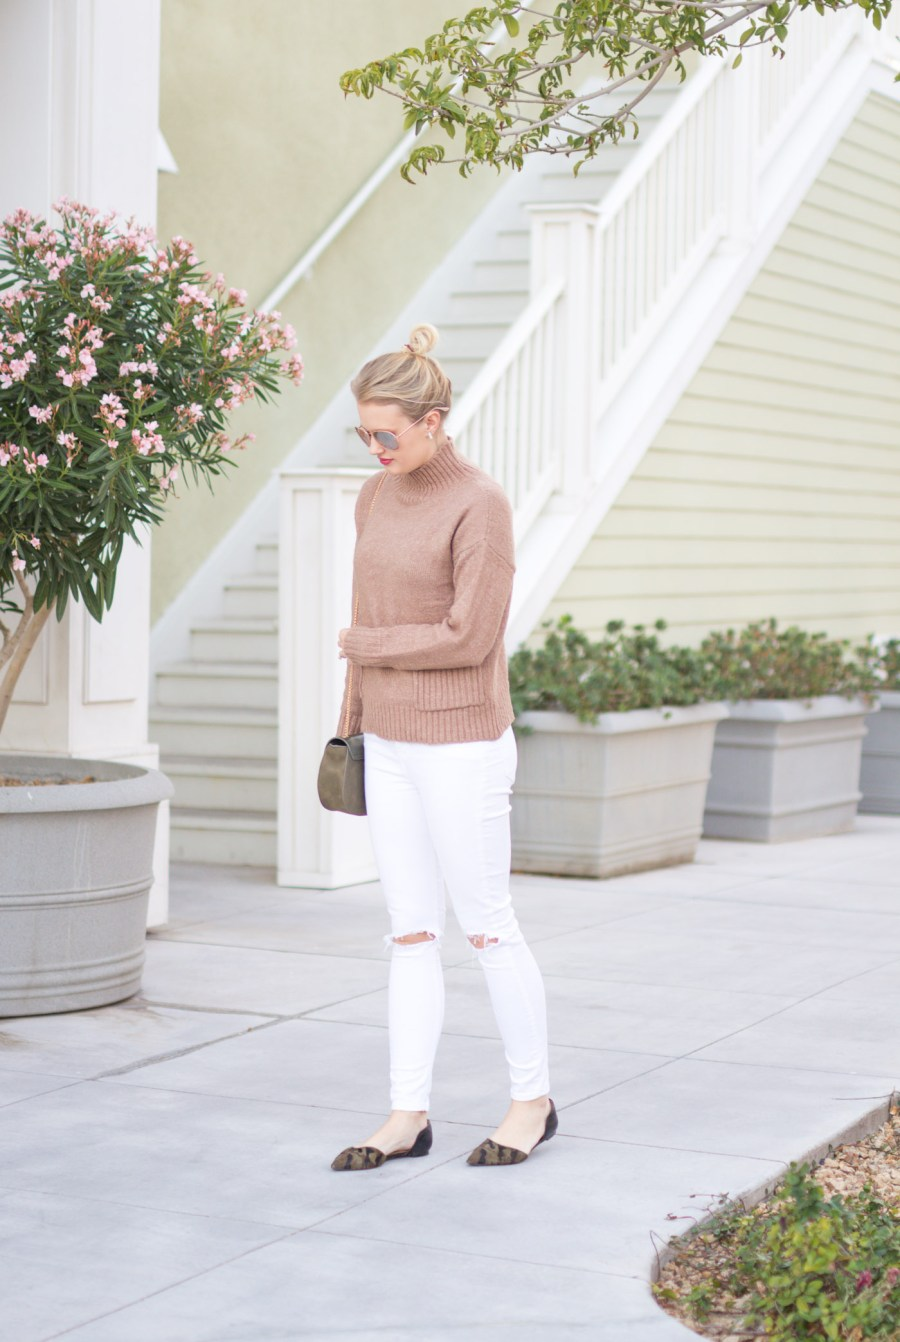 10 Ways To Wear White Skinny Jeans, white jeans, outfit ideas, fashion blog, Treats and Trends